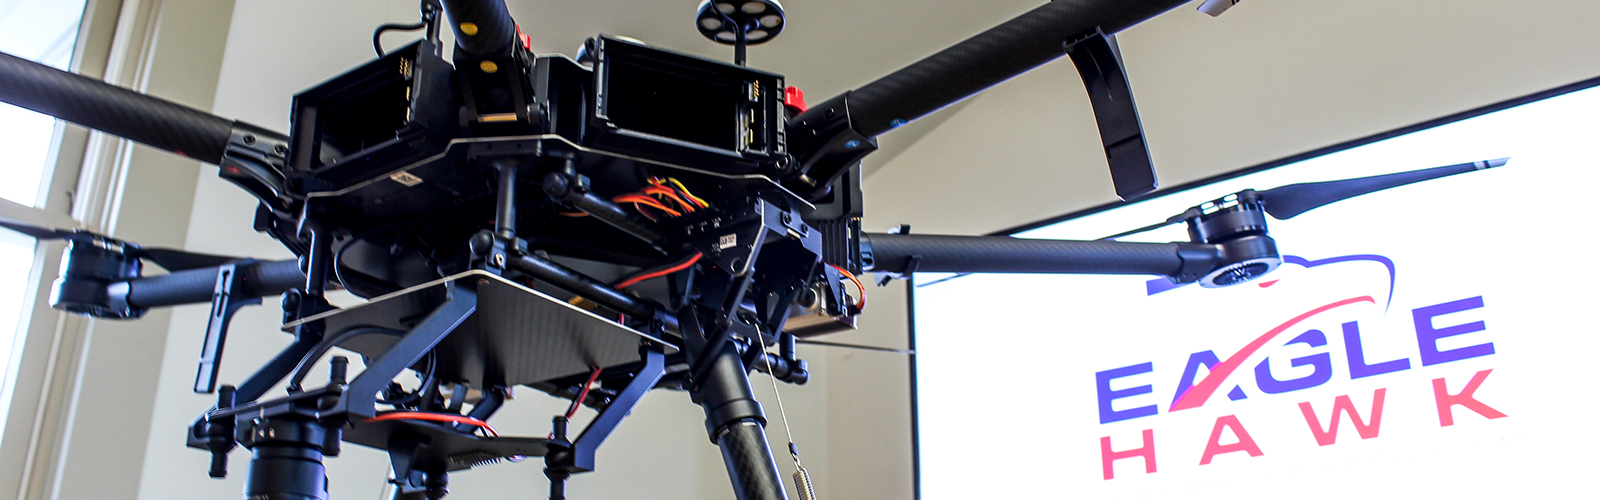 EagleHawk uses drones to conduct inspections and retrieve data for analysis.